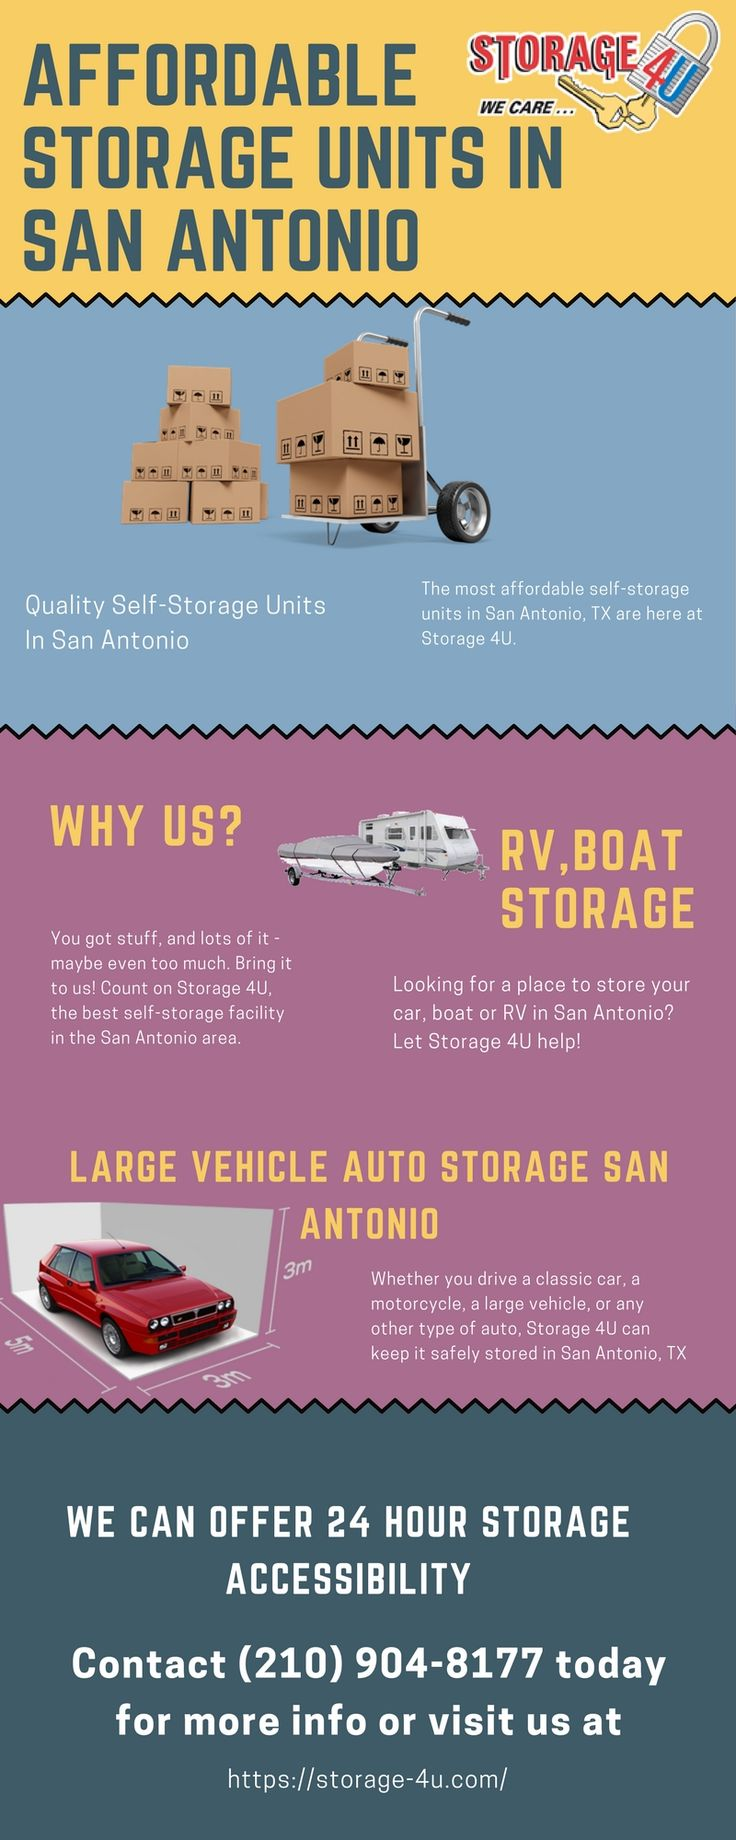 Storage 4U offers a variety of cheap storage units in San Antonio, TX. Self Storage, Commercial Storage, Auto, RV boat storage & more! Our storage facilities are available 24/7.